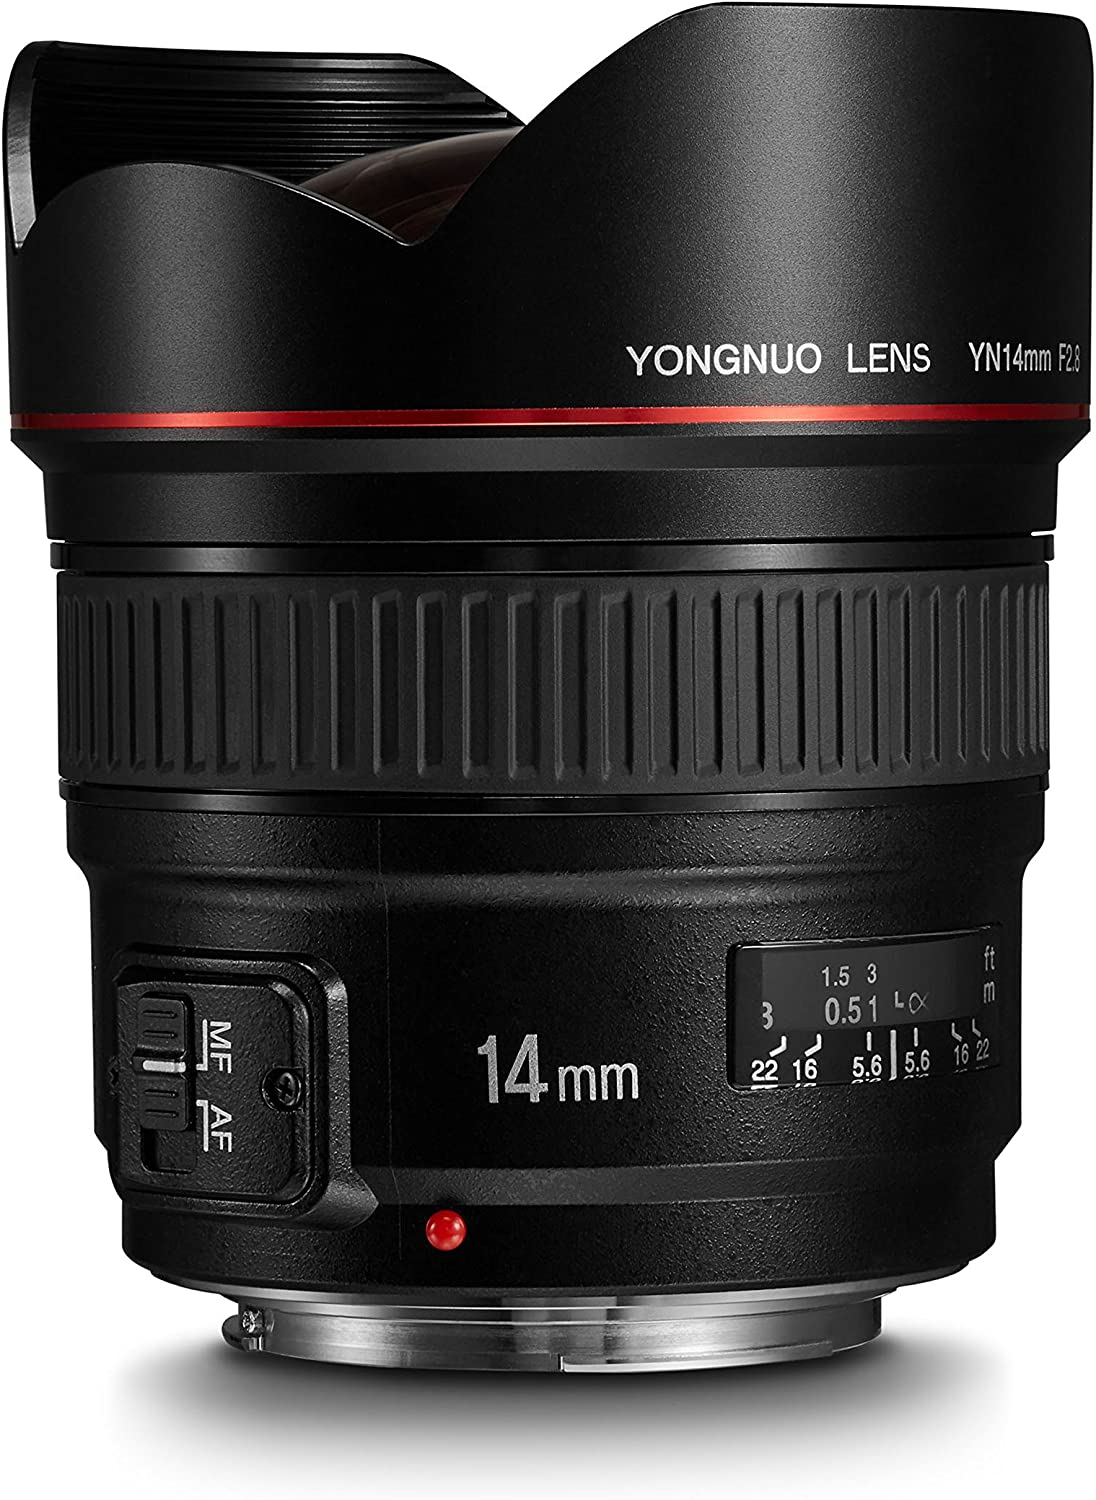 YONGNUO YN14mm F2.8 Ultra-Wide Angle Prime Lens for Canon DSLR Cameras